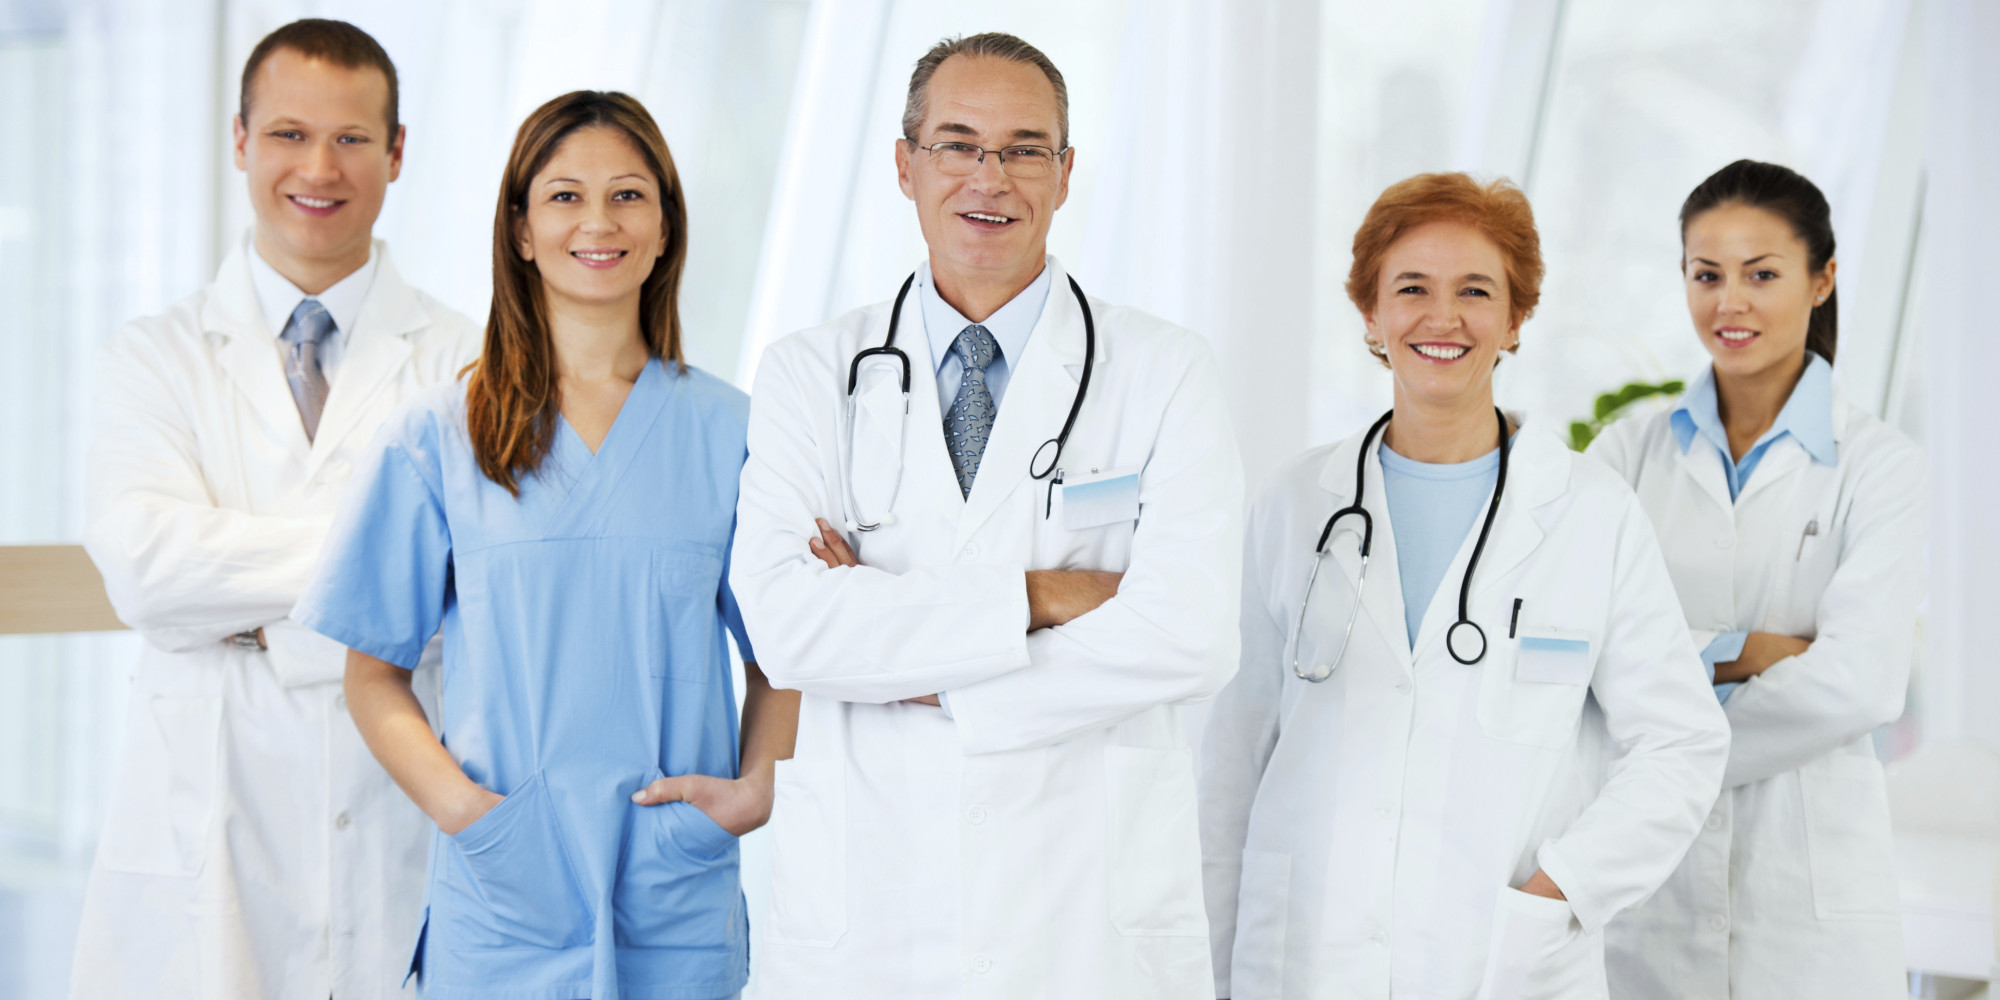 can doctors thrive huffpost